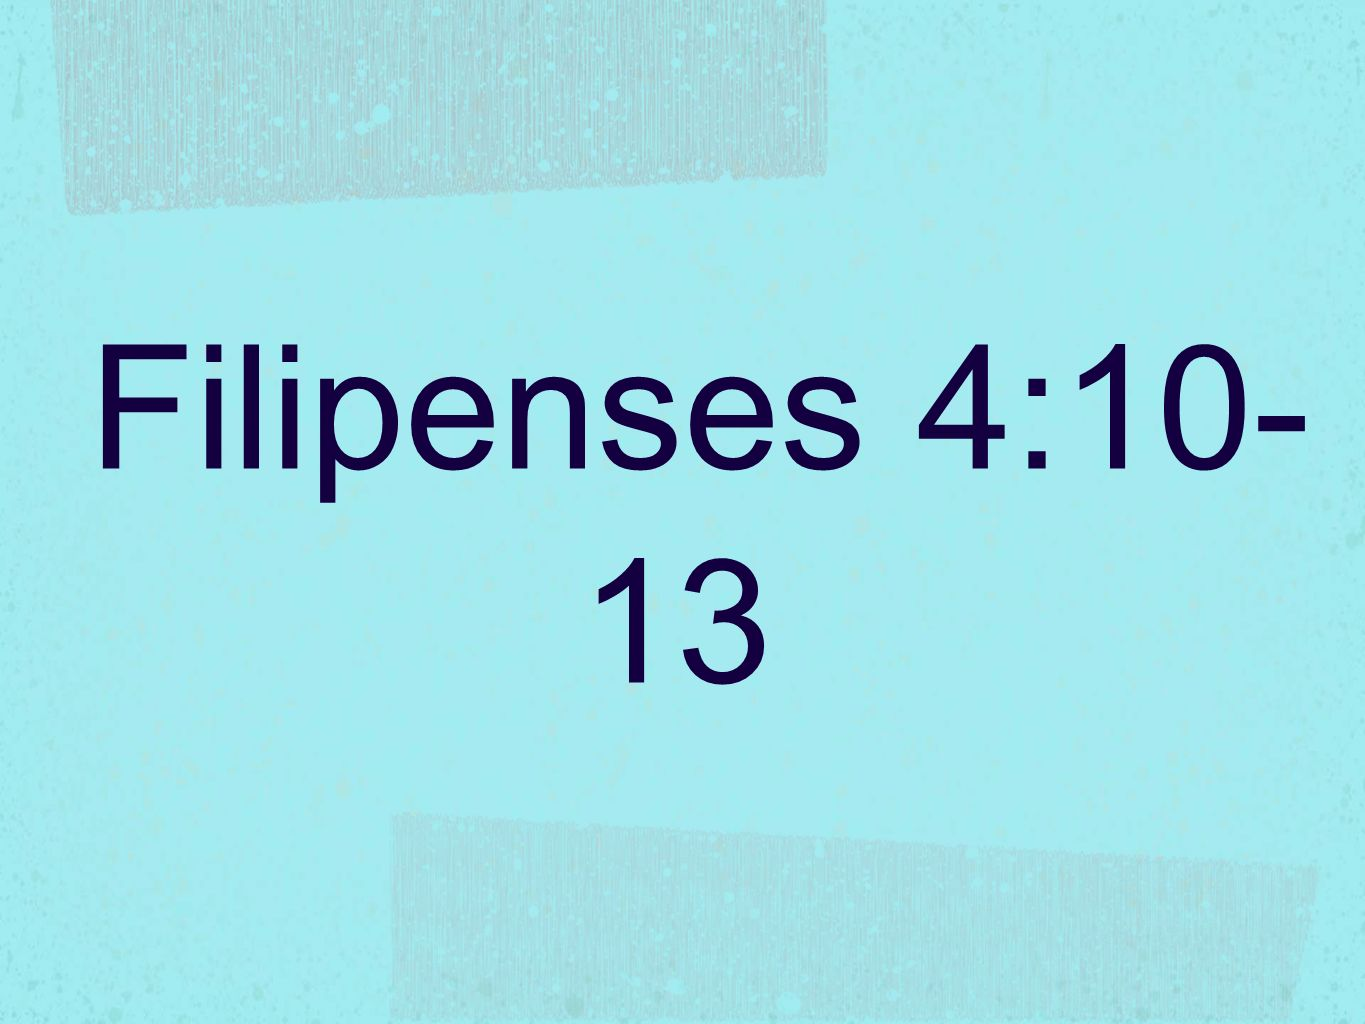 Filipenses 4:10-13